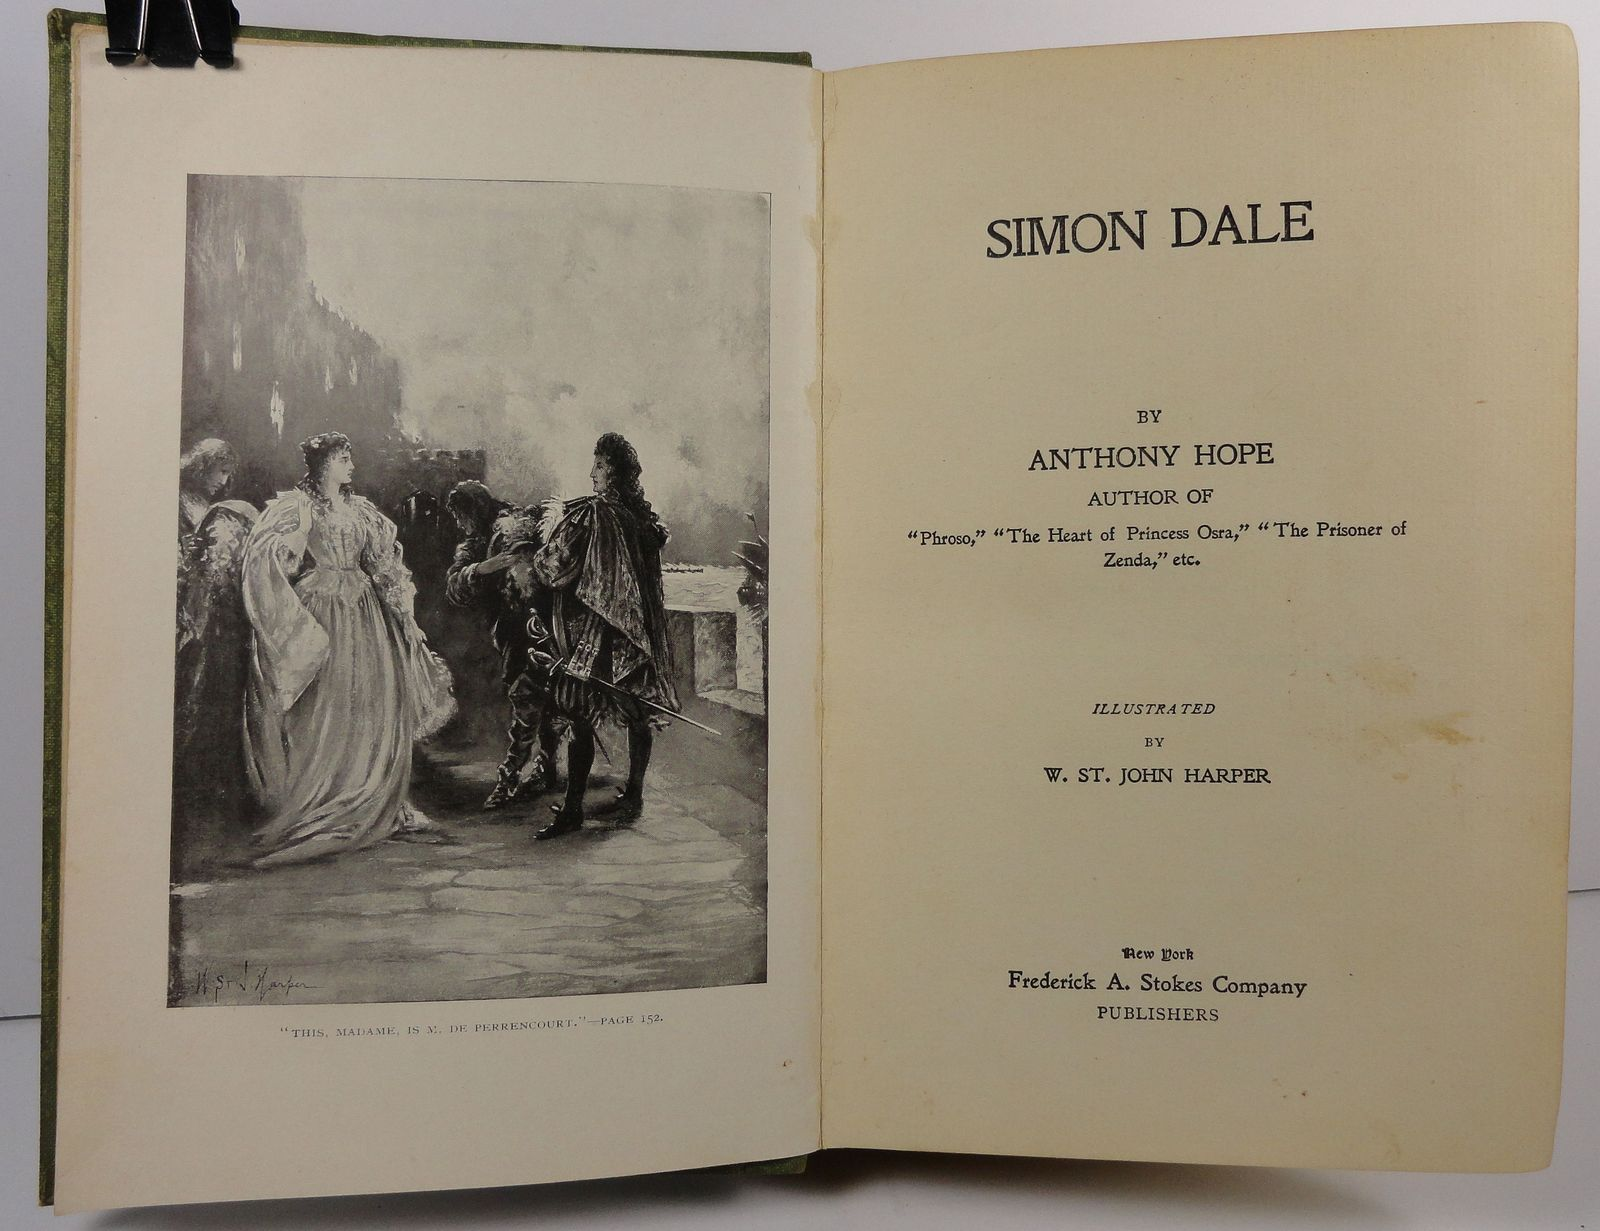 Simon Dale by Anthony Hope 1897 Frederick A. Stokes